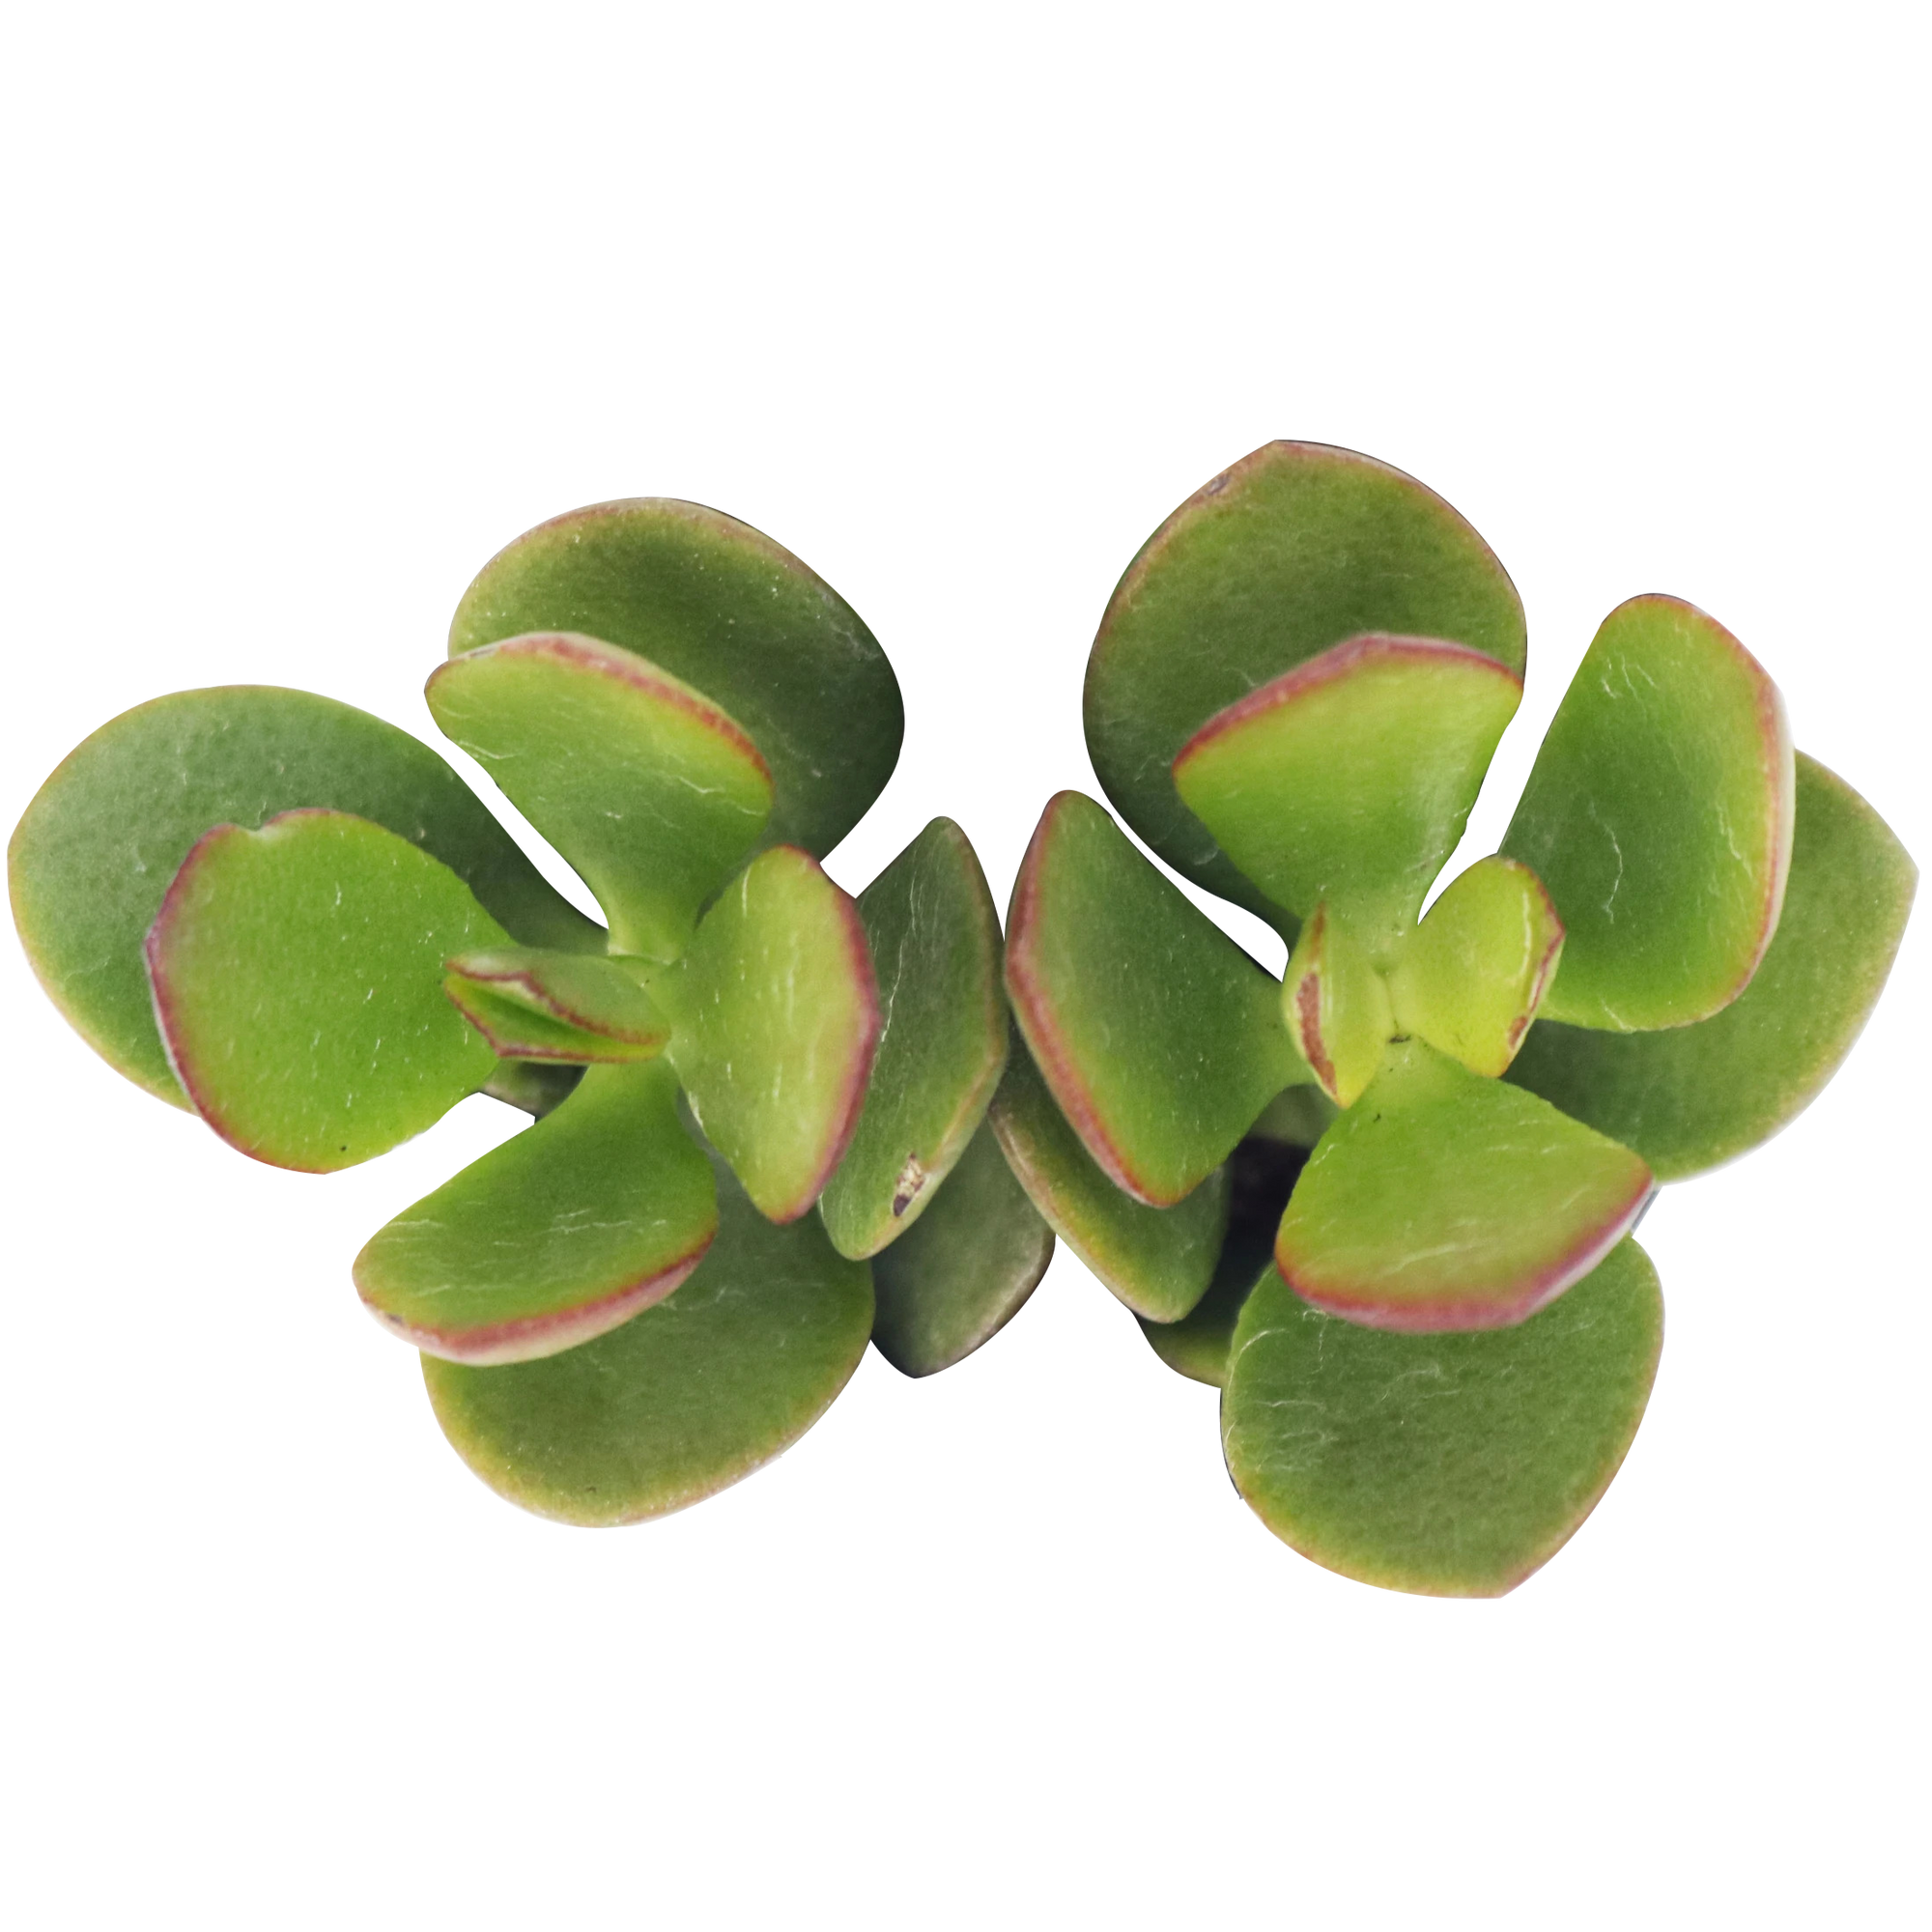 Crassula Ovata Obliqua Jade Plant for sale, How to care for Crassula Ovata Obliqua Jade Plant, Friendship Tree, Lucky Plant, Money Tree, Penny Plant, Dollar Plant, Tree of Happiness